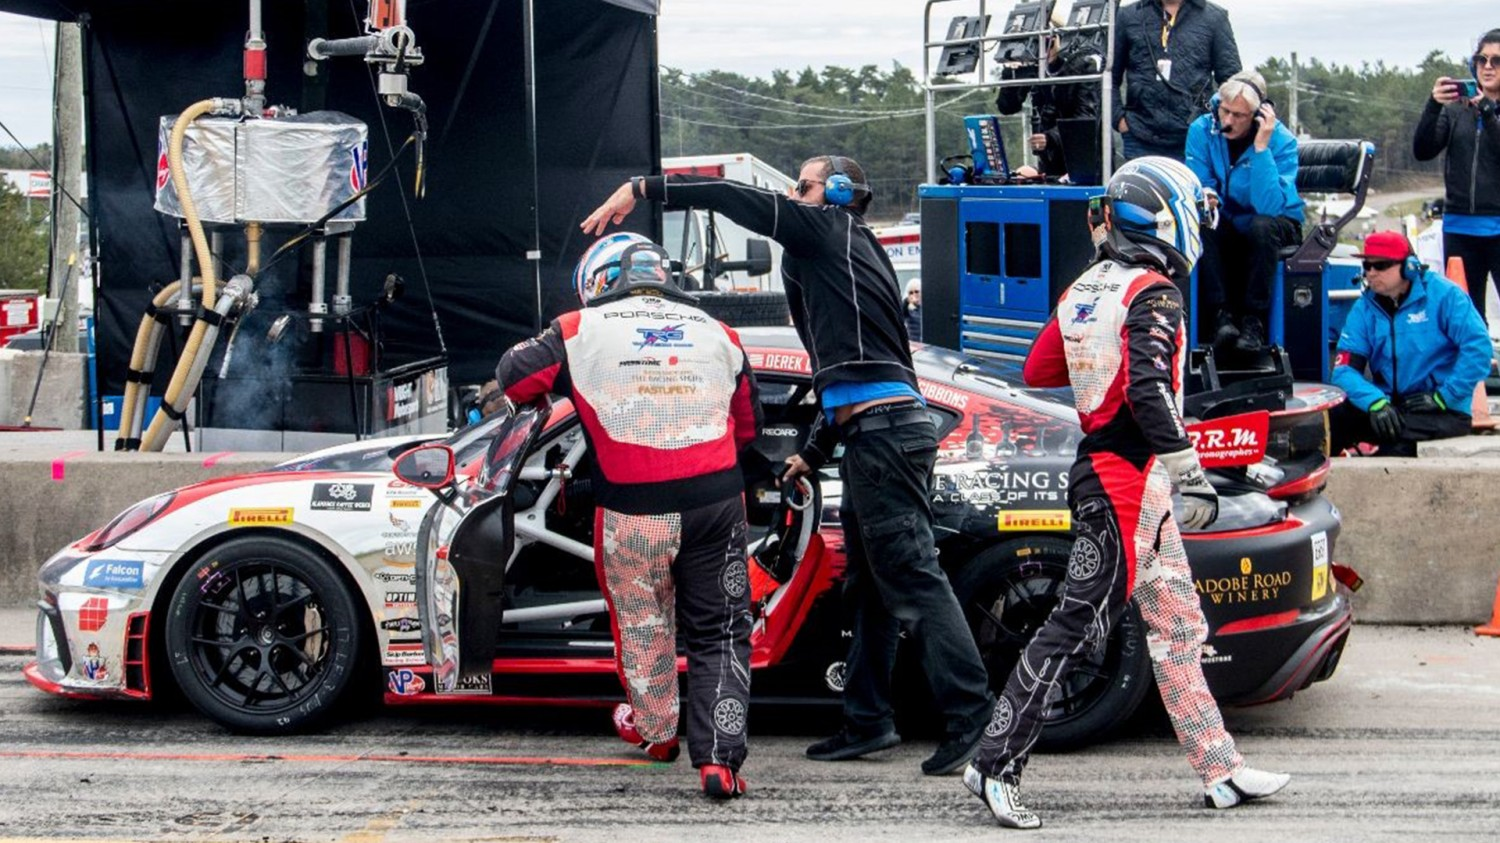 The Racers Group delivers strong performance at Canadian Tire Motorsport Park